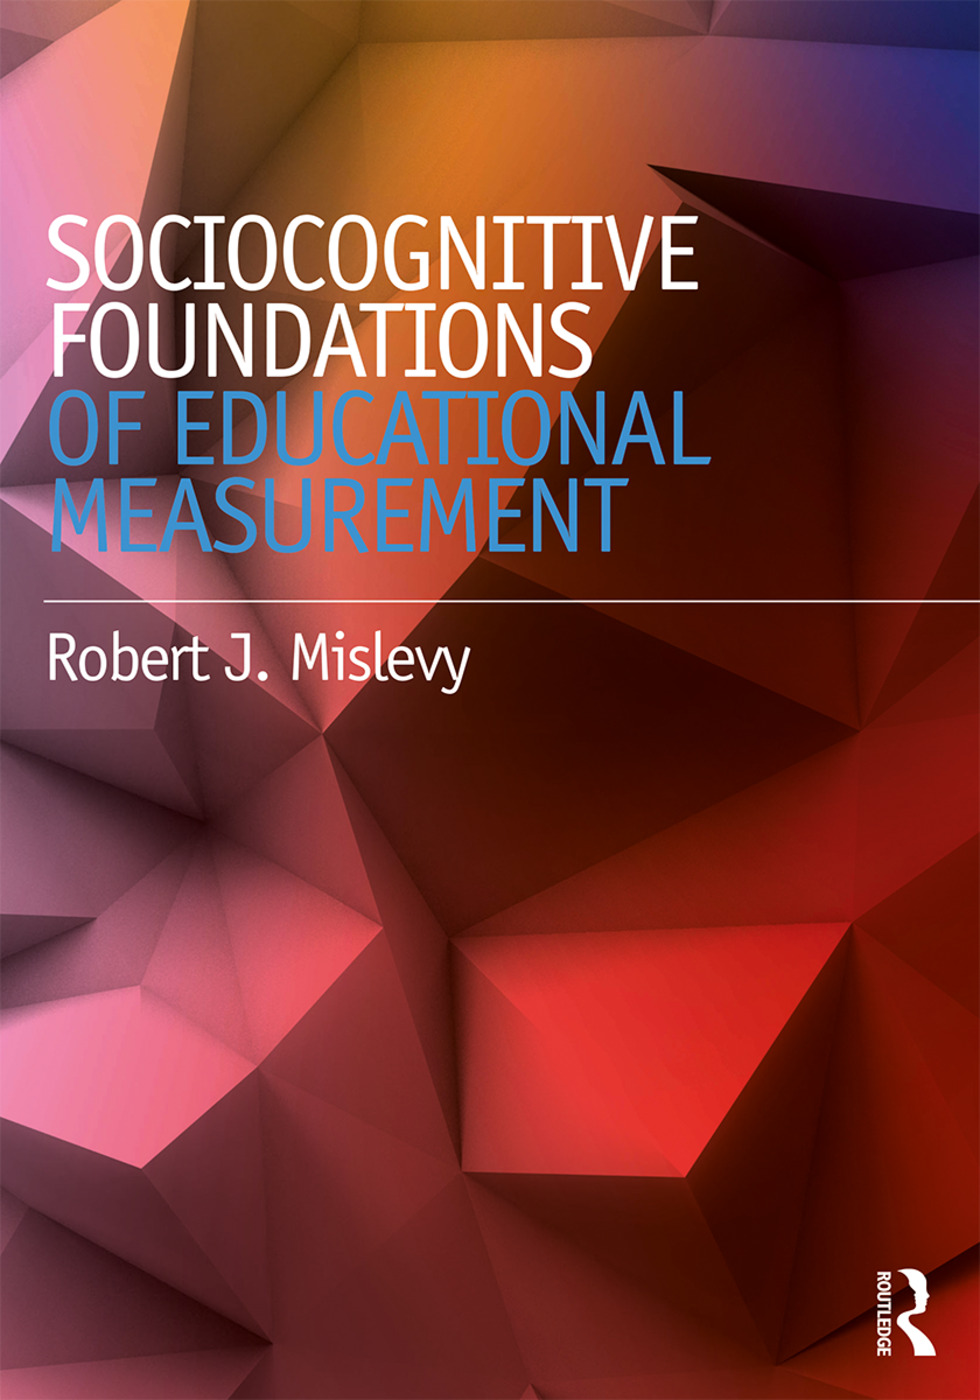 Sociocognitive Foundations of Educational Measurement: 1st Edition (Paperback) book cover